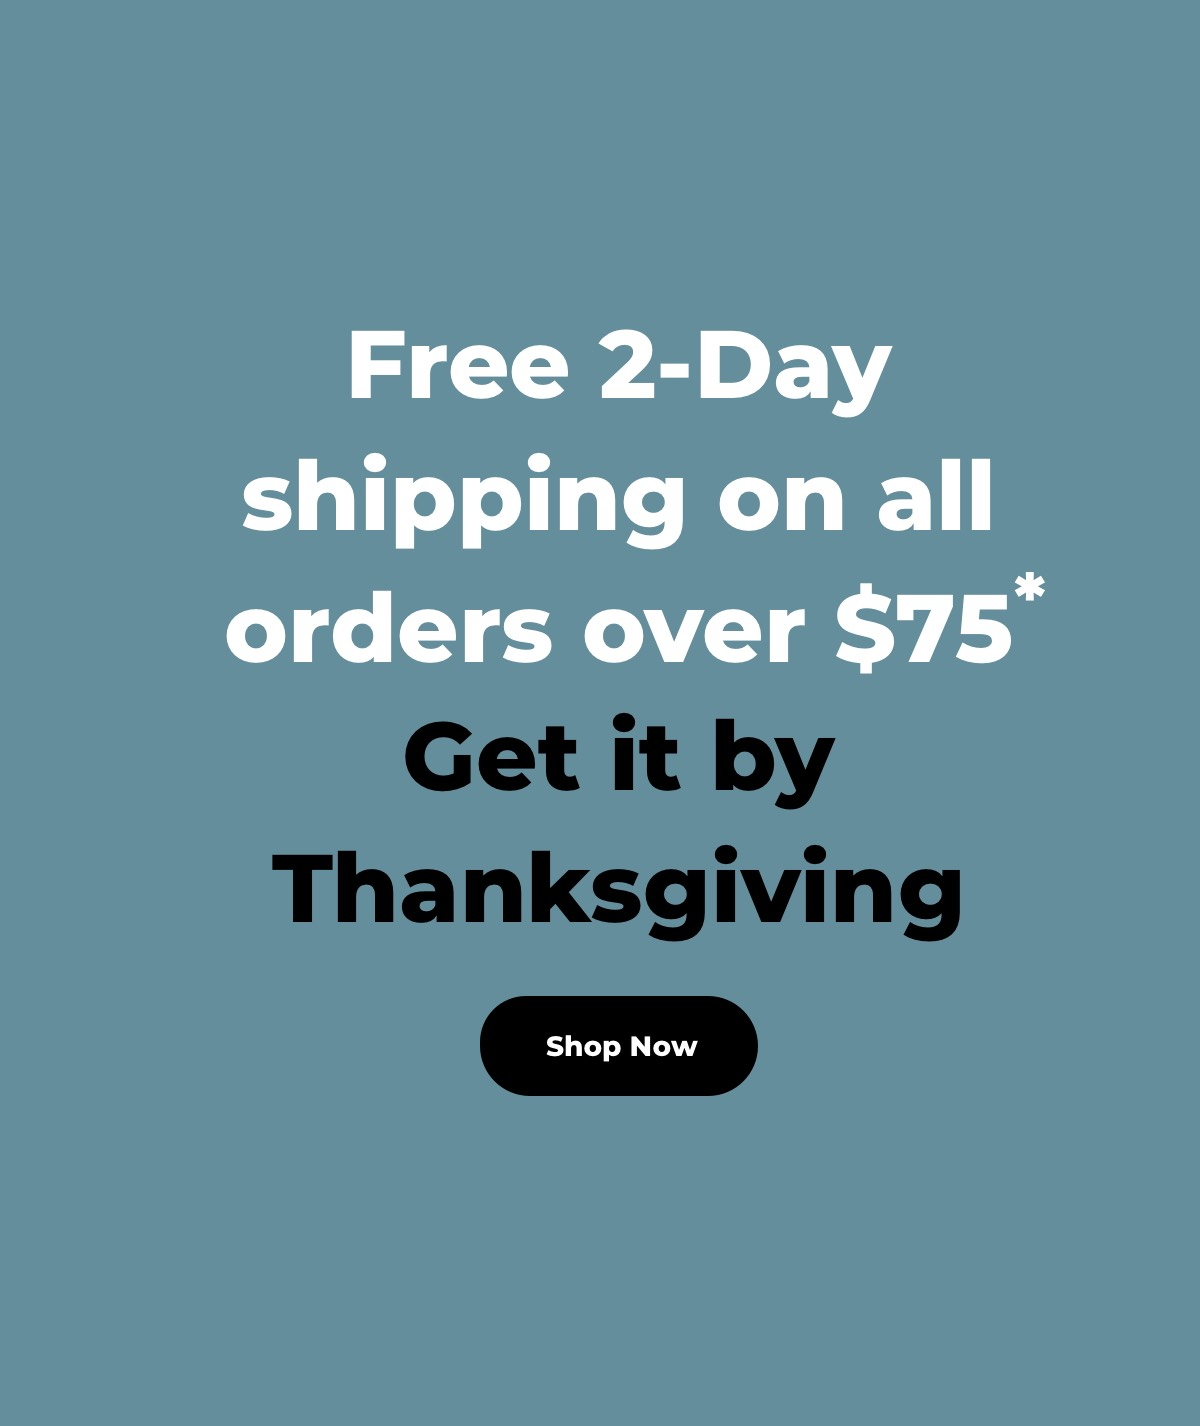 free 2 day shipping offer Image